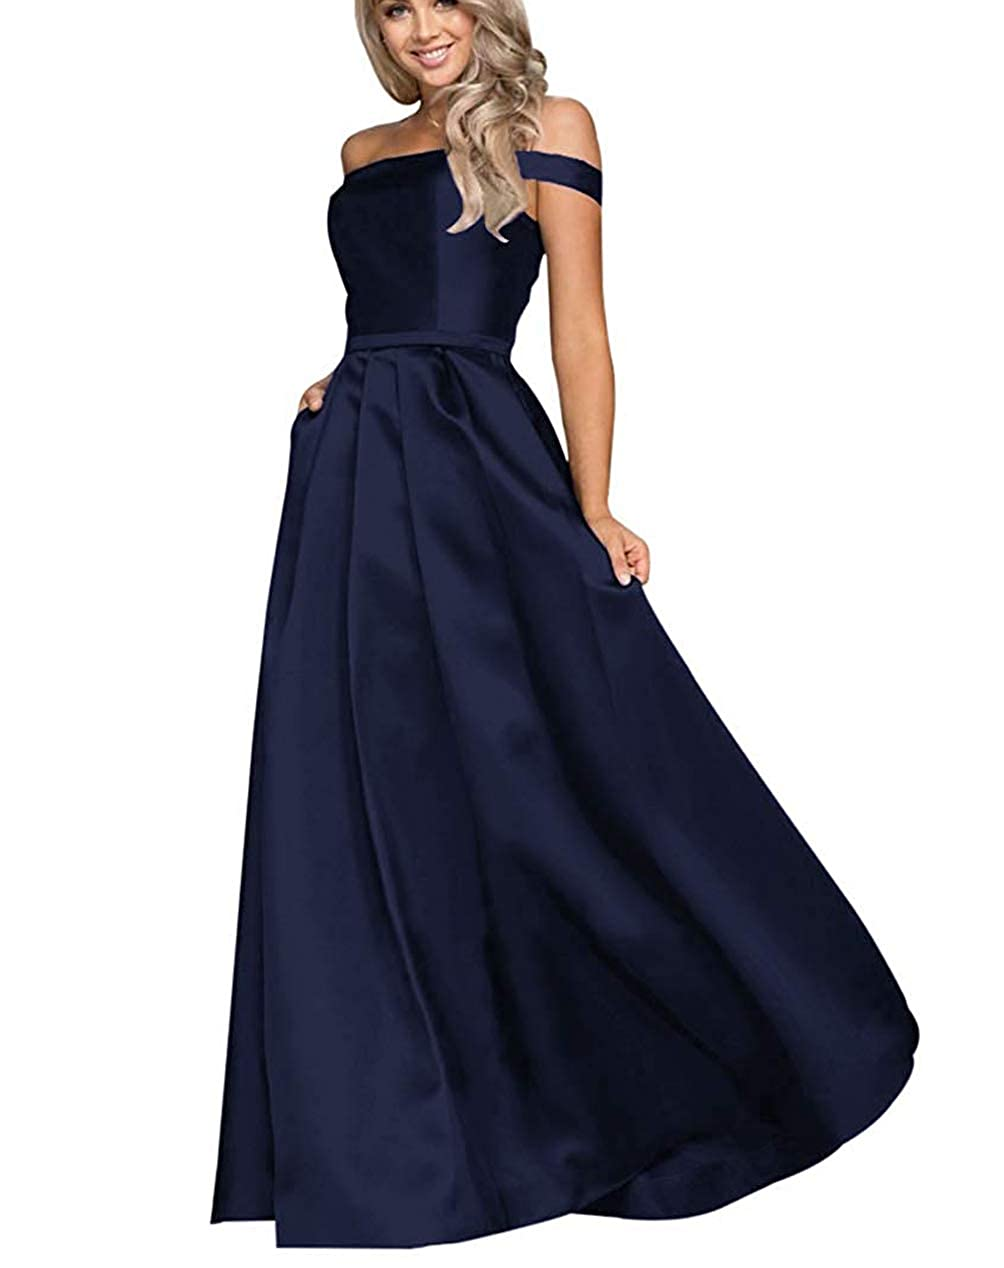 Navy bluee Tmaoomo Aline Off The Shoulder Satin Prom Party Dresses for Women Formal Evening Gowns